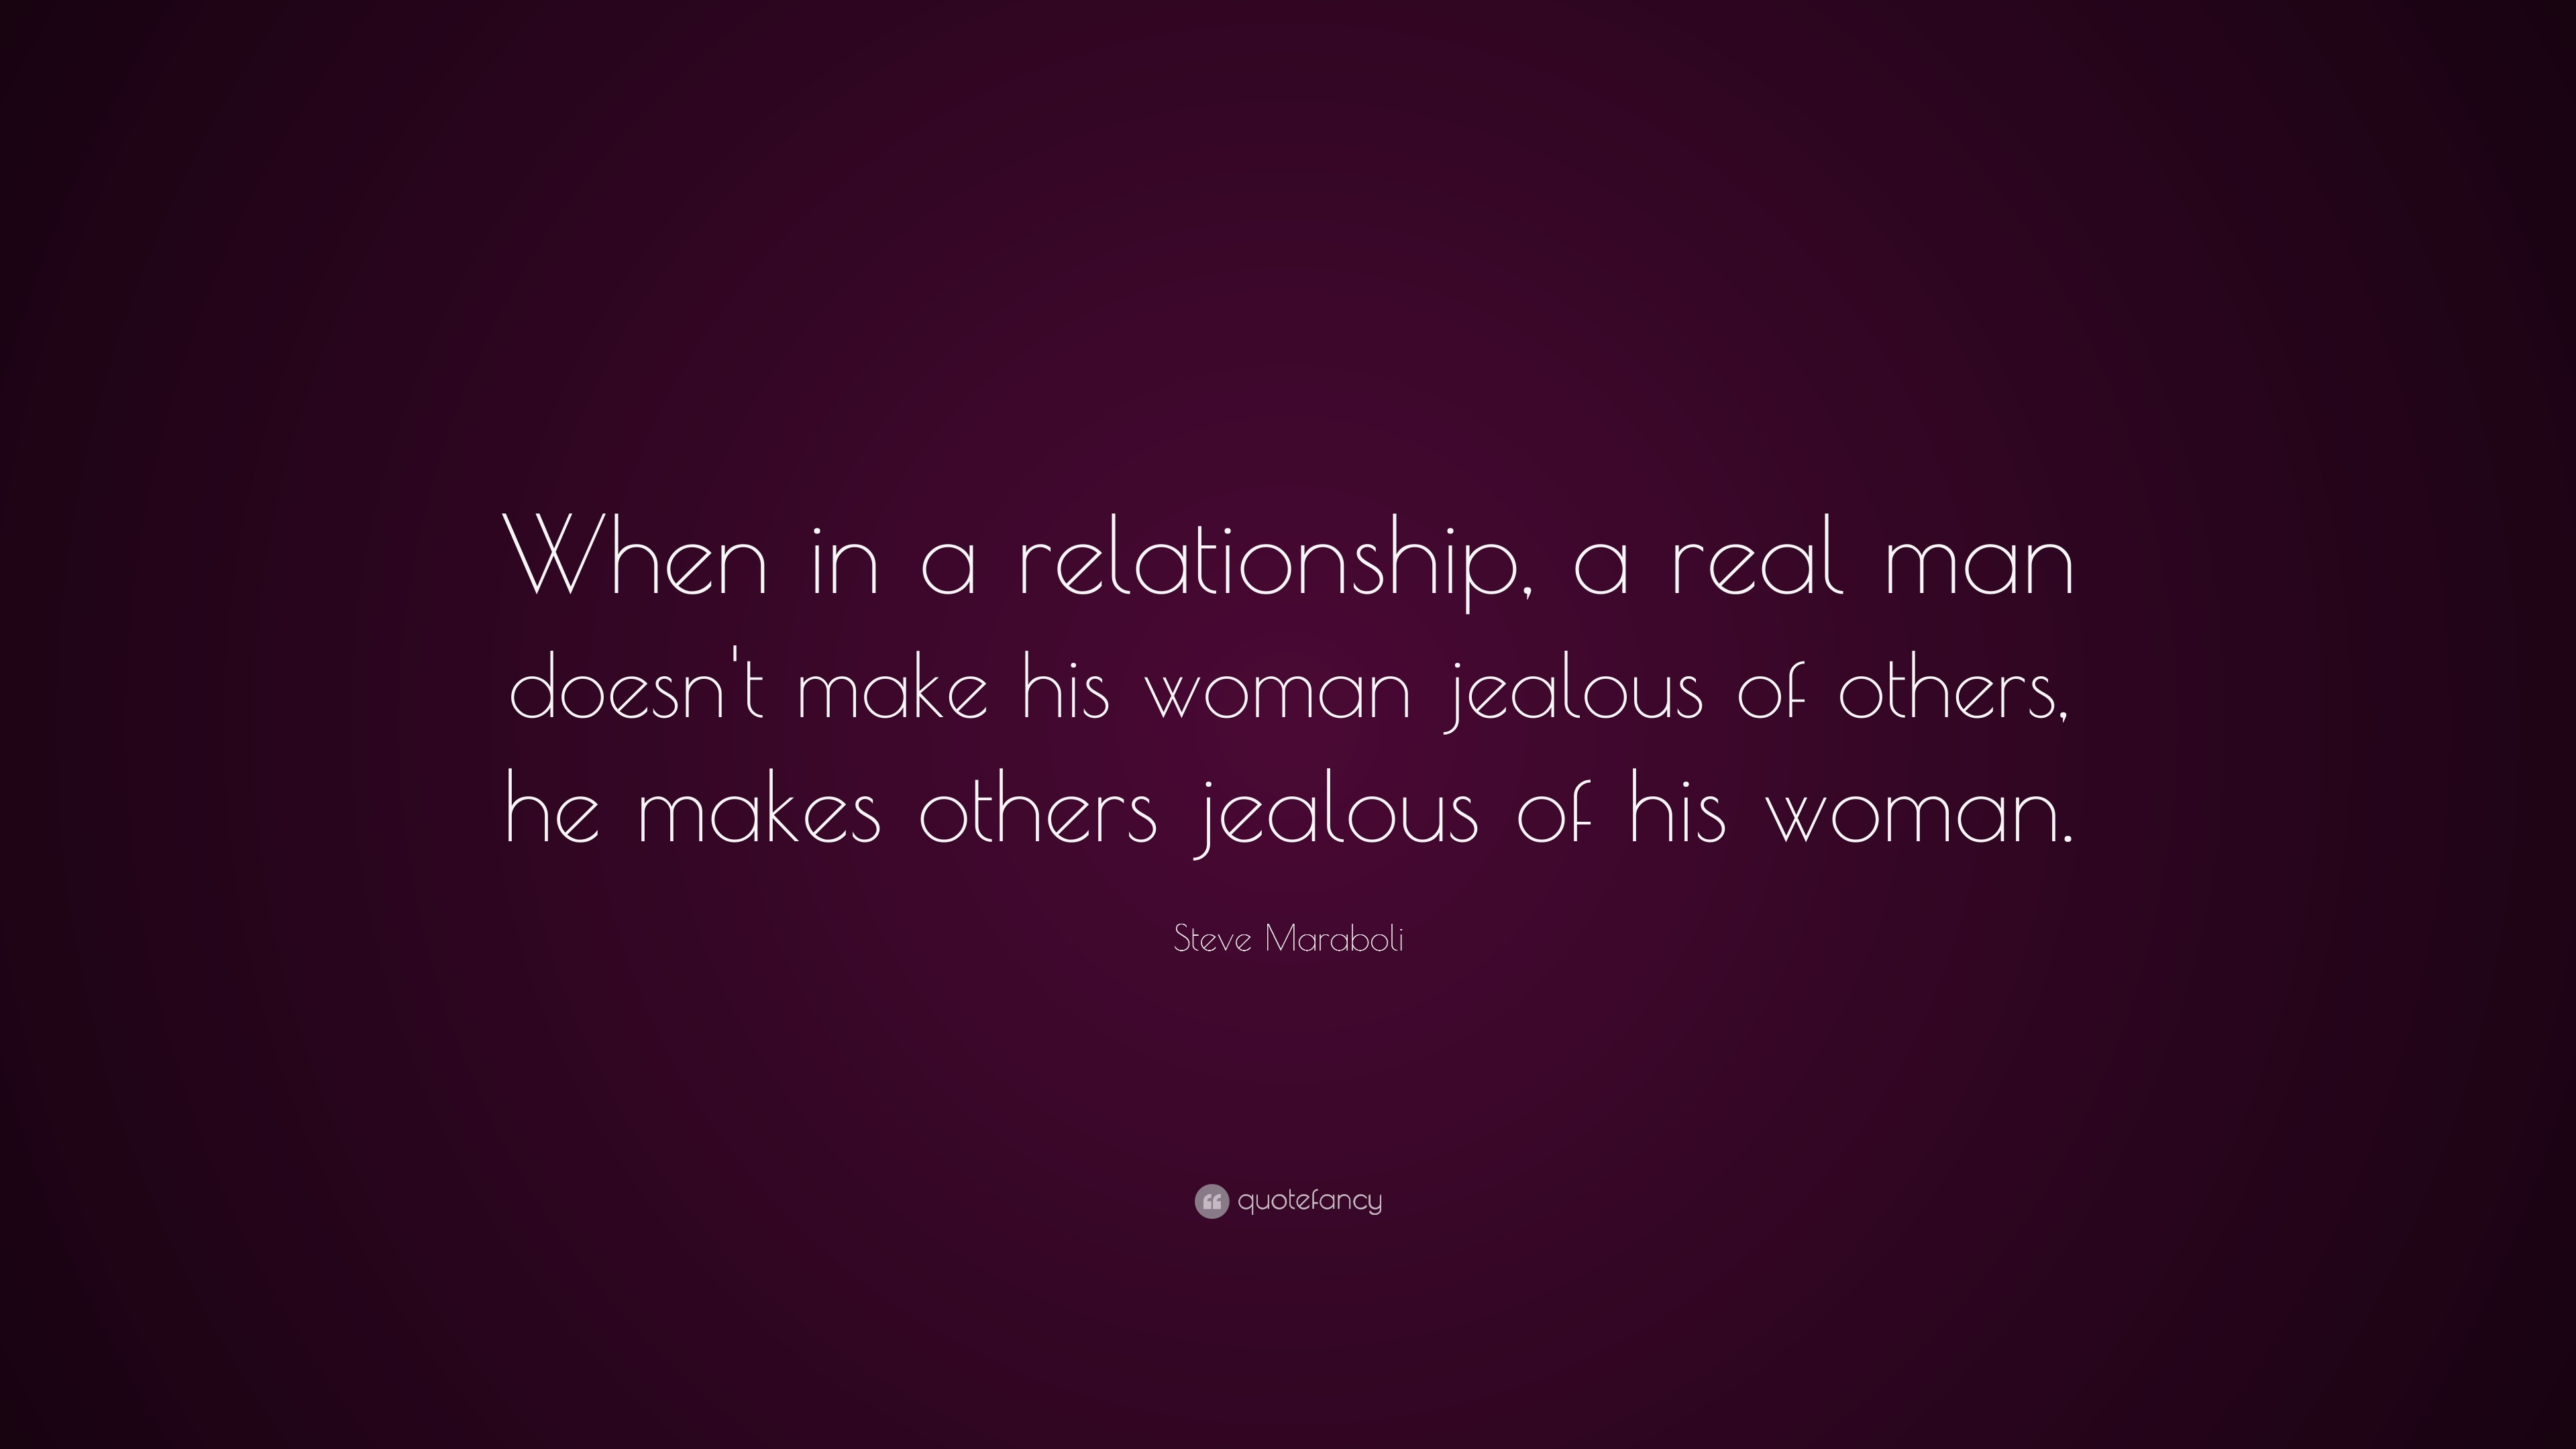 Love Obsession Quotes Relationship Quotes 57 Wallpapers  Quotefancy